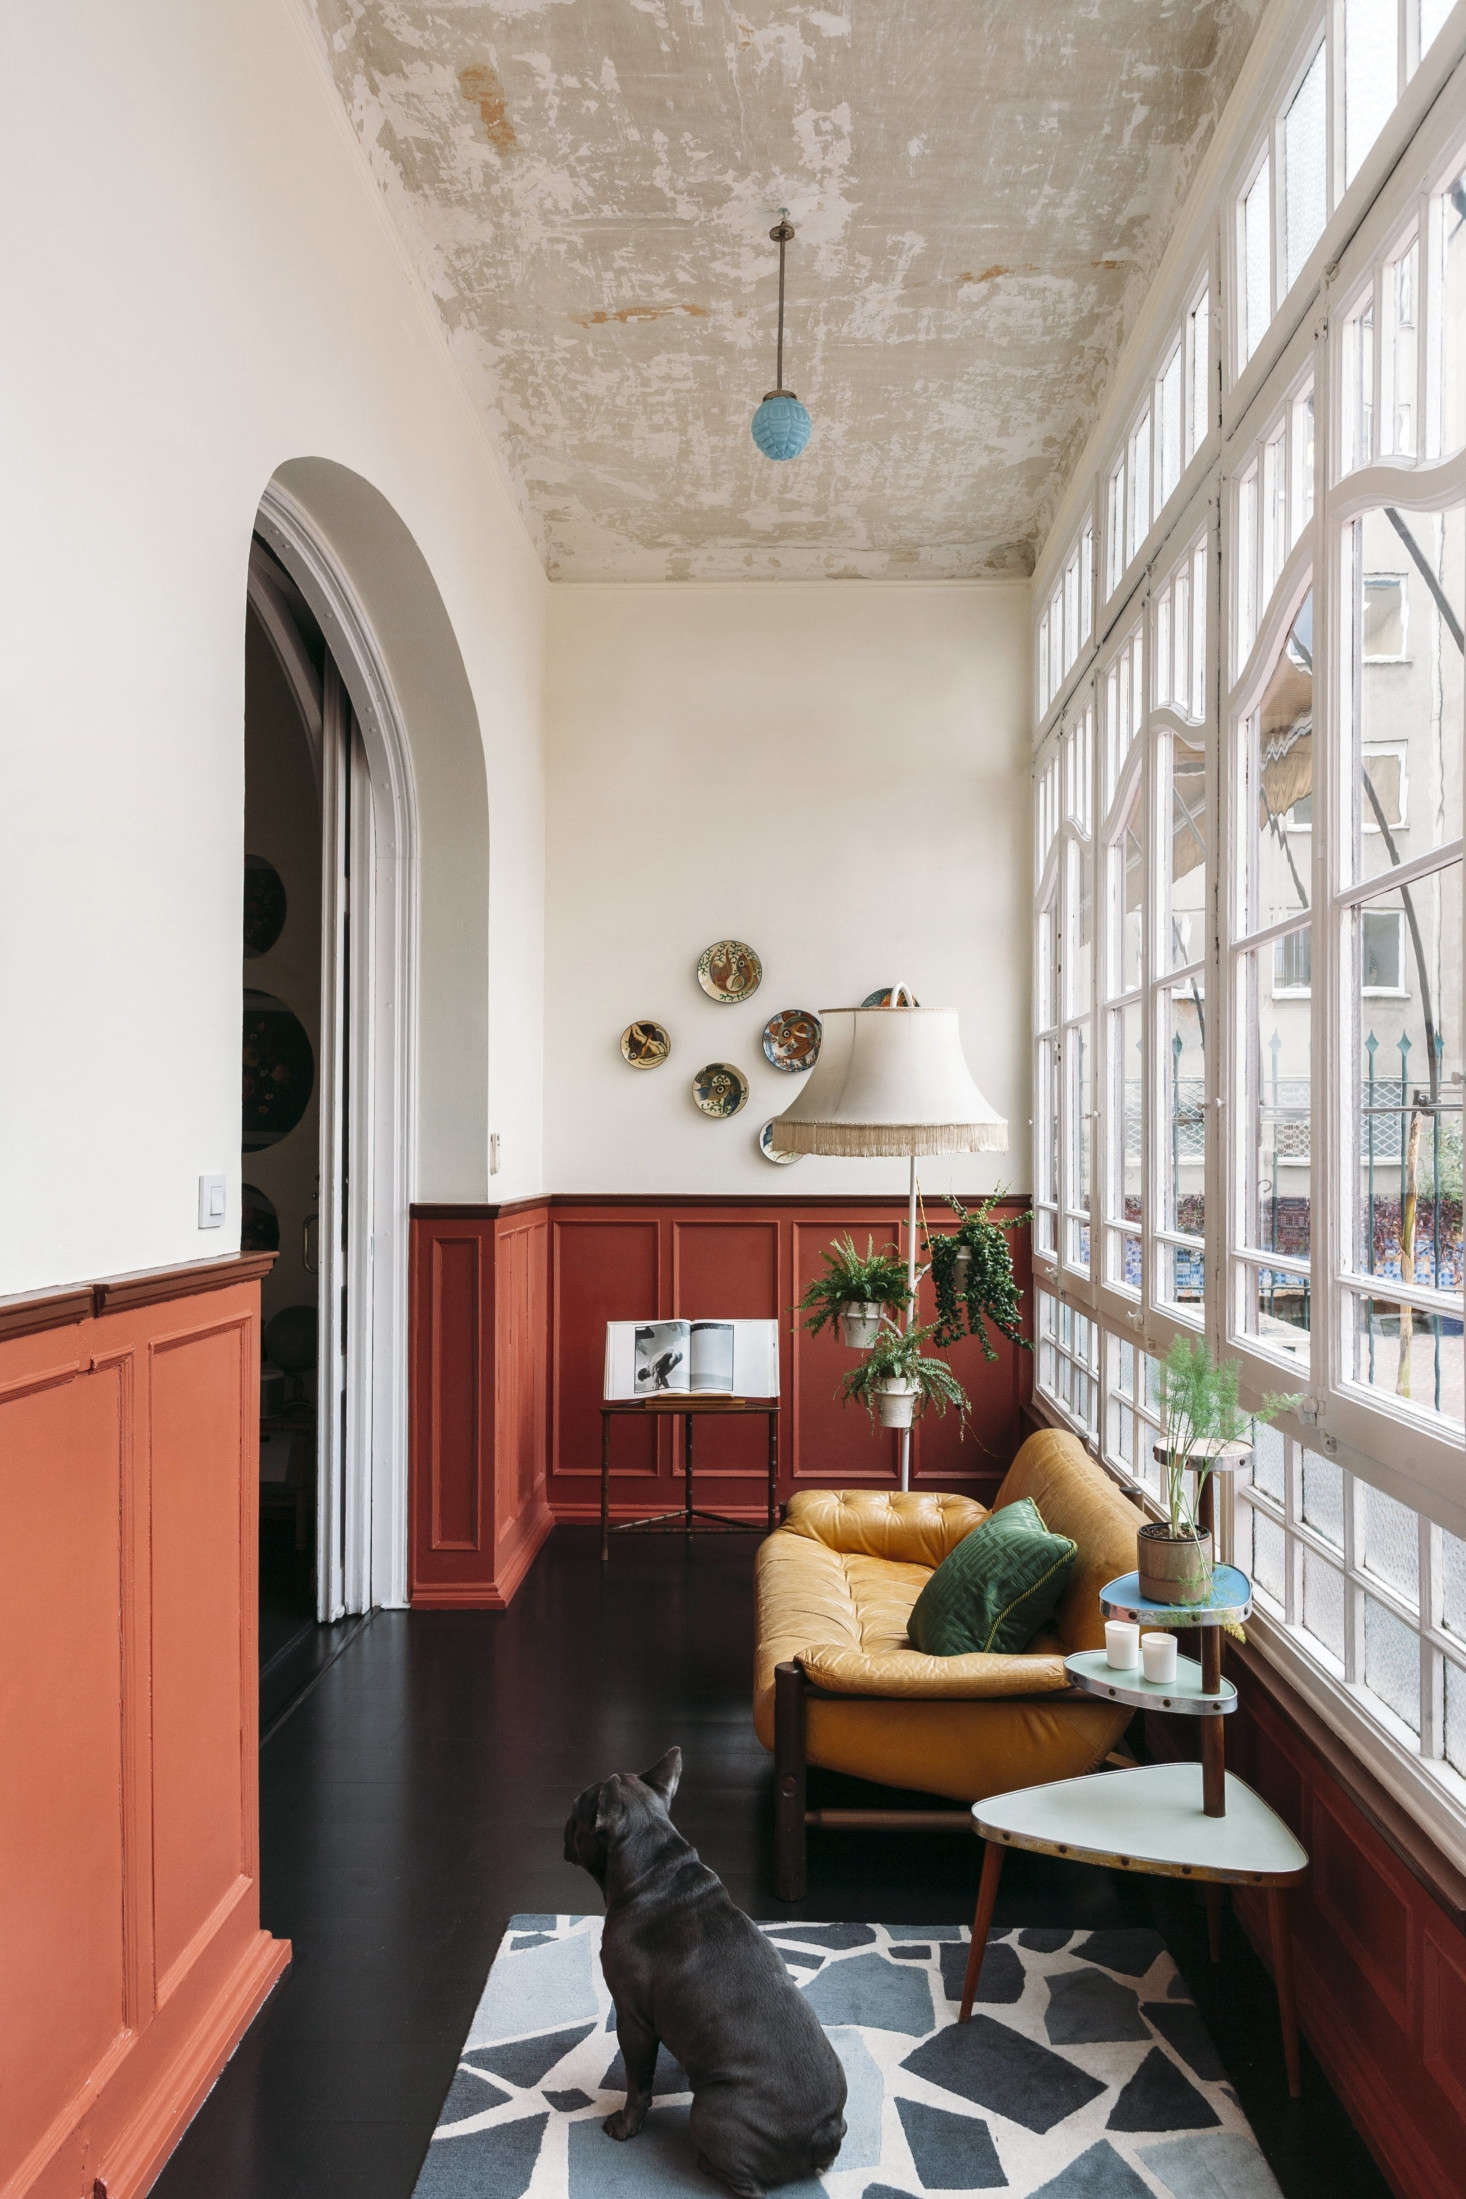 An arched entry leads to a long, narrow lounge with its original divided glass wall and a refinished ebonized floor. The designers scraped away the ceiling paint and left it as is, detailed with a small blue milk glass pendant.